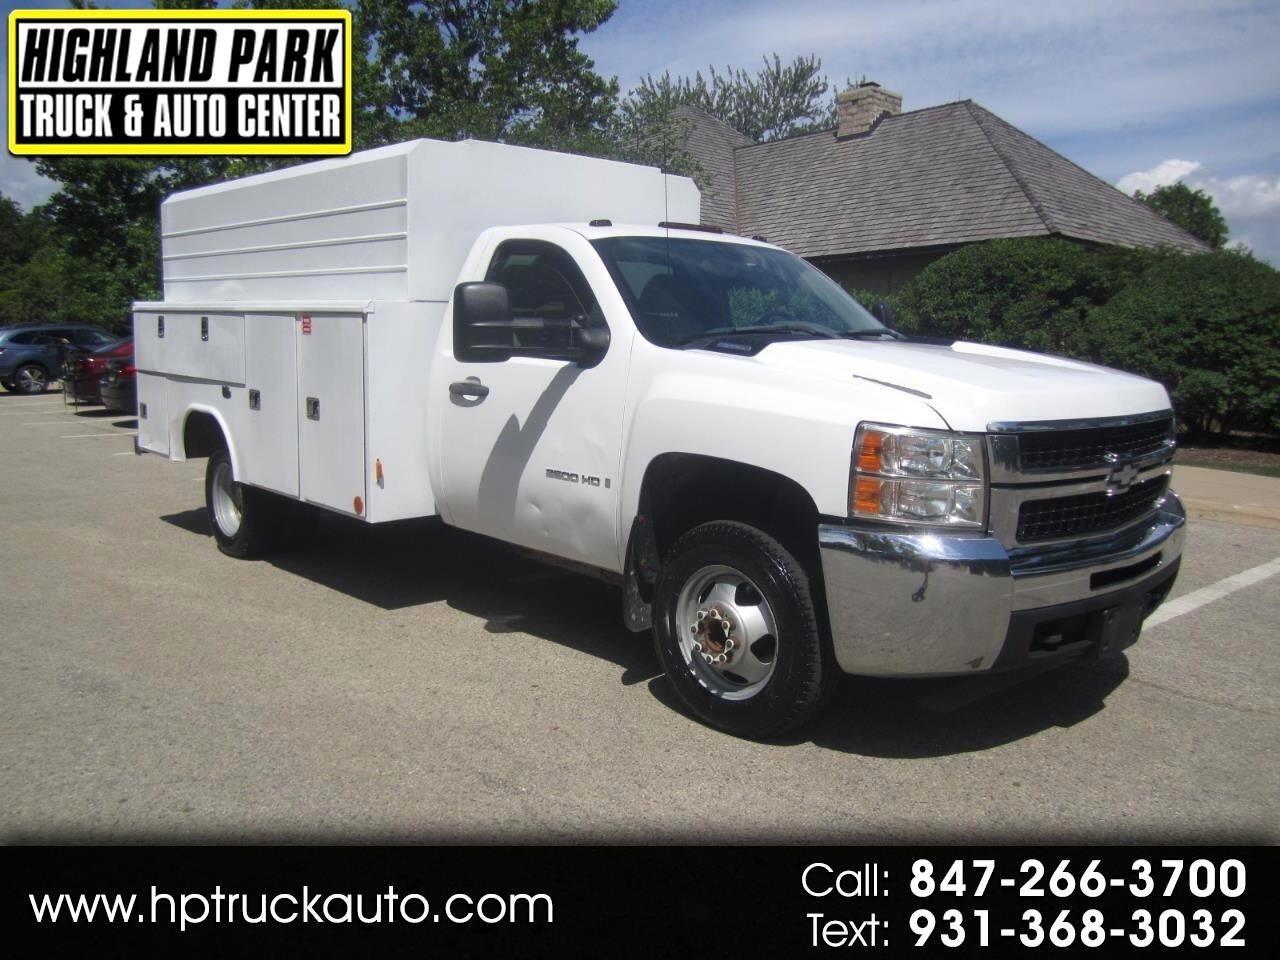 Used 2008 Chevrolet Silverado 3500hd 3500 Dually Diesel Utility For Sale In Chicago Il 60035 Highland Park Truck Auto Center